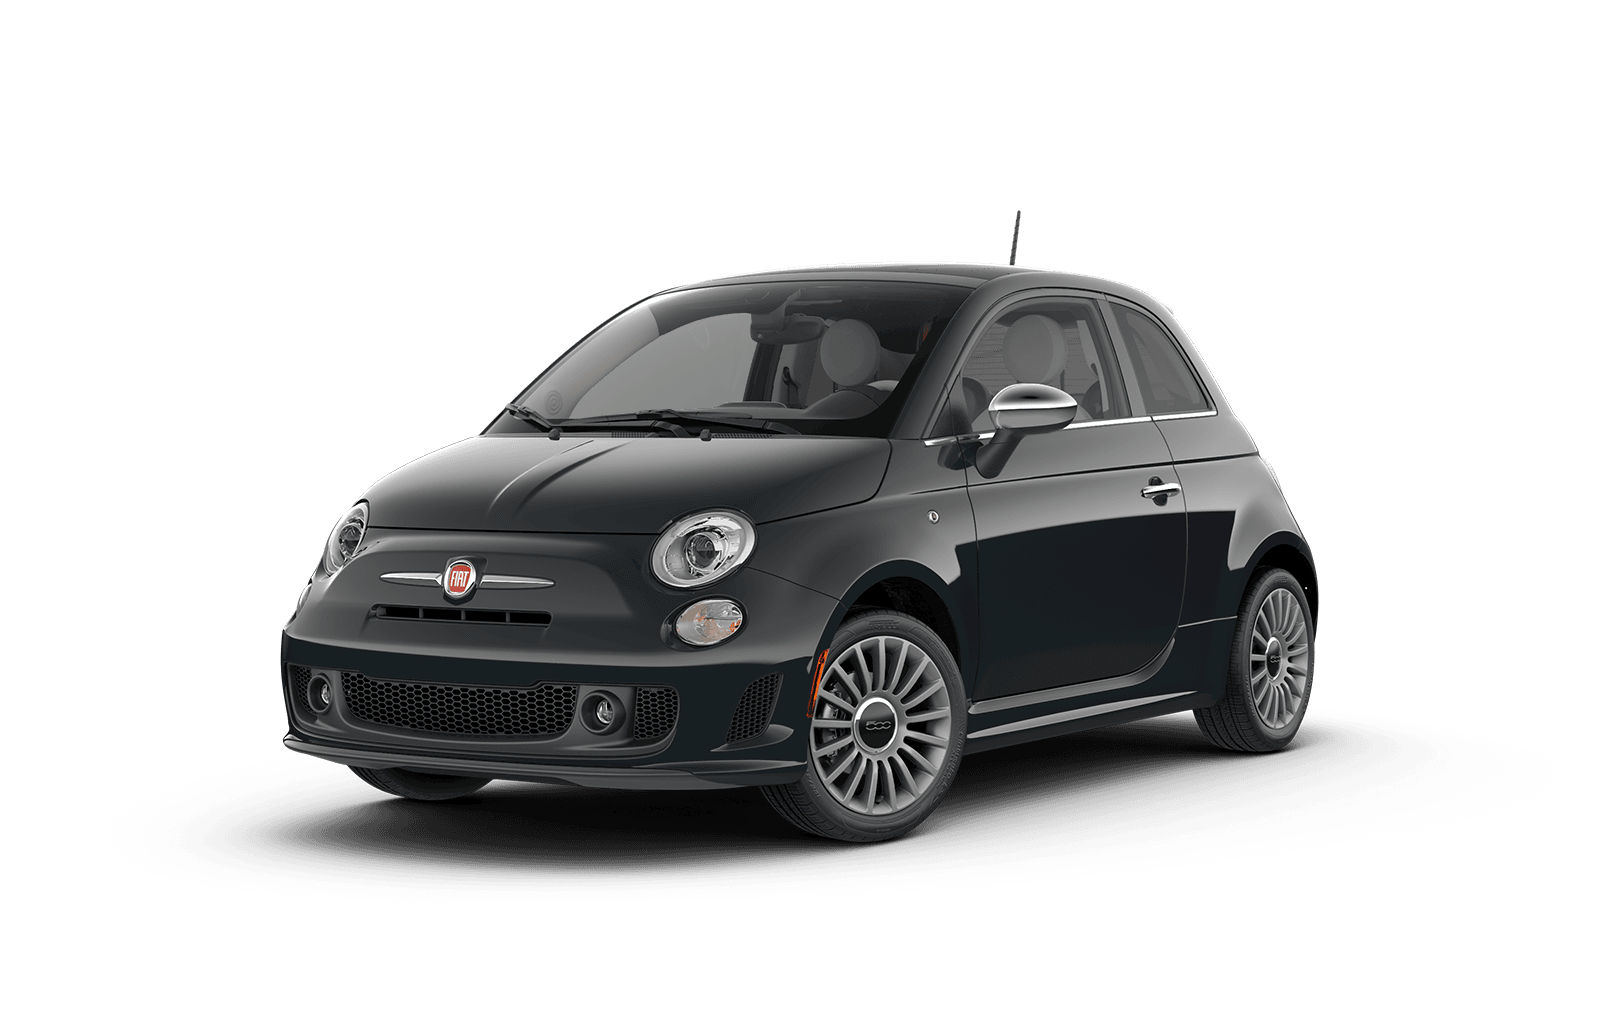 2018 FIAT 500 Full View in Blue Grey with Wheels